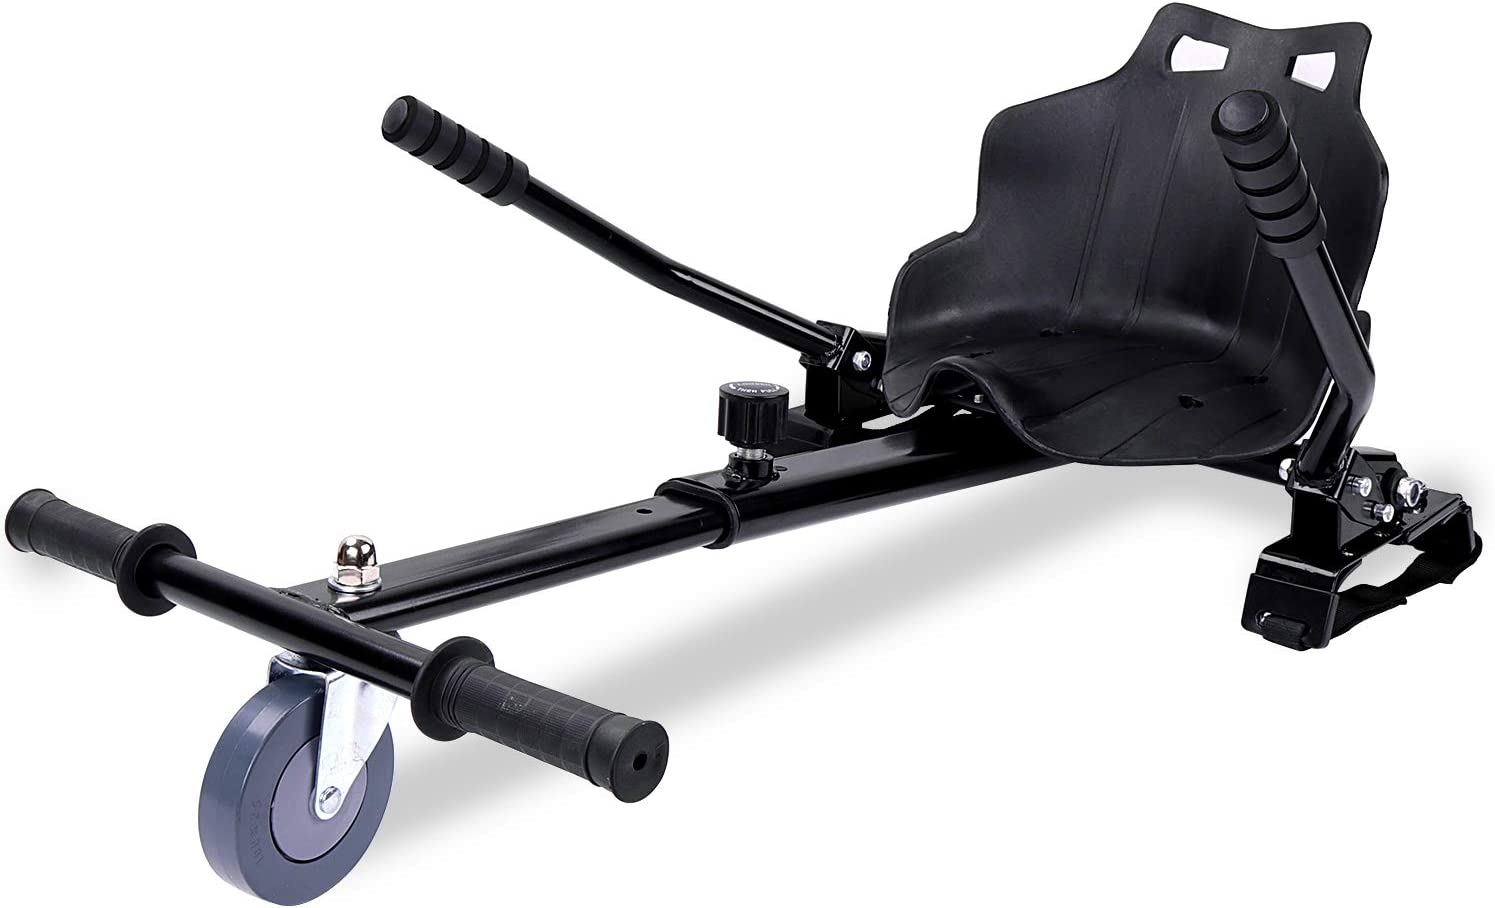 Does NOT include Hoverboard RIGRIN Hoverkart Hoverboard Seat Attachment Accessory for 6.5 8 10 Scooter Hoverkart only Go Kart Hover Cart Frame